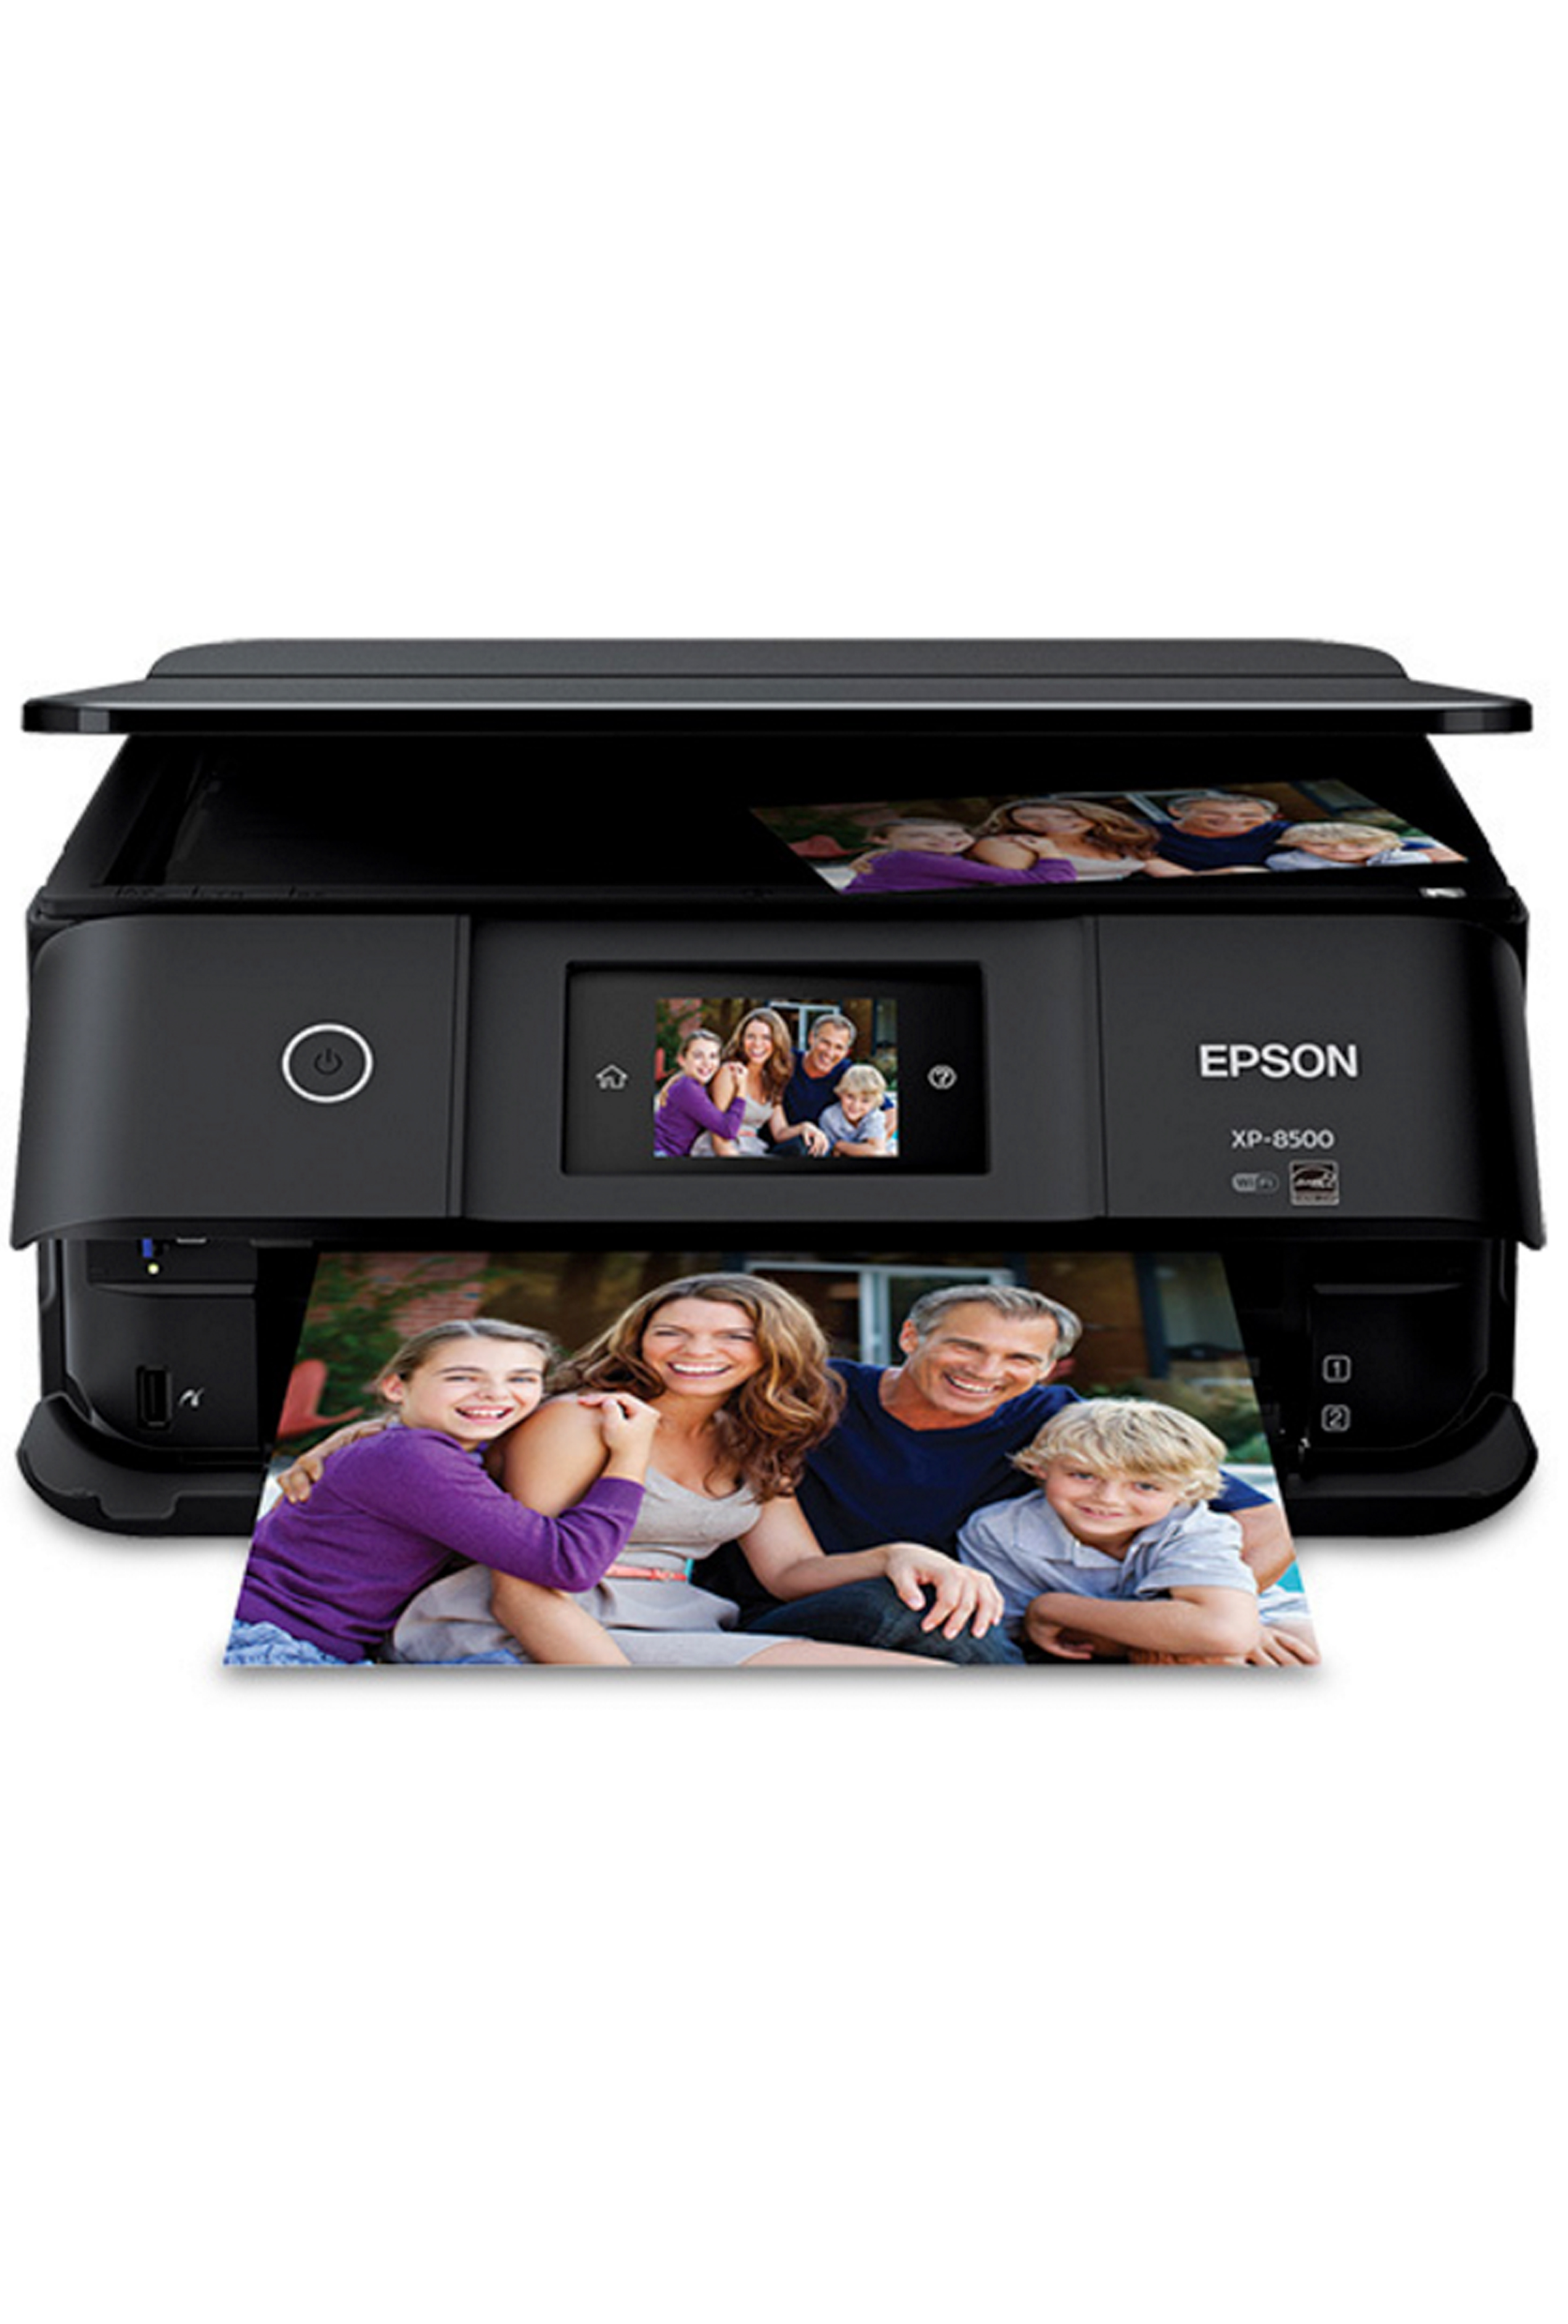 Epson Expression Photo XP-8500 Small-in-One All-in-One Printer...